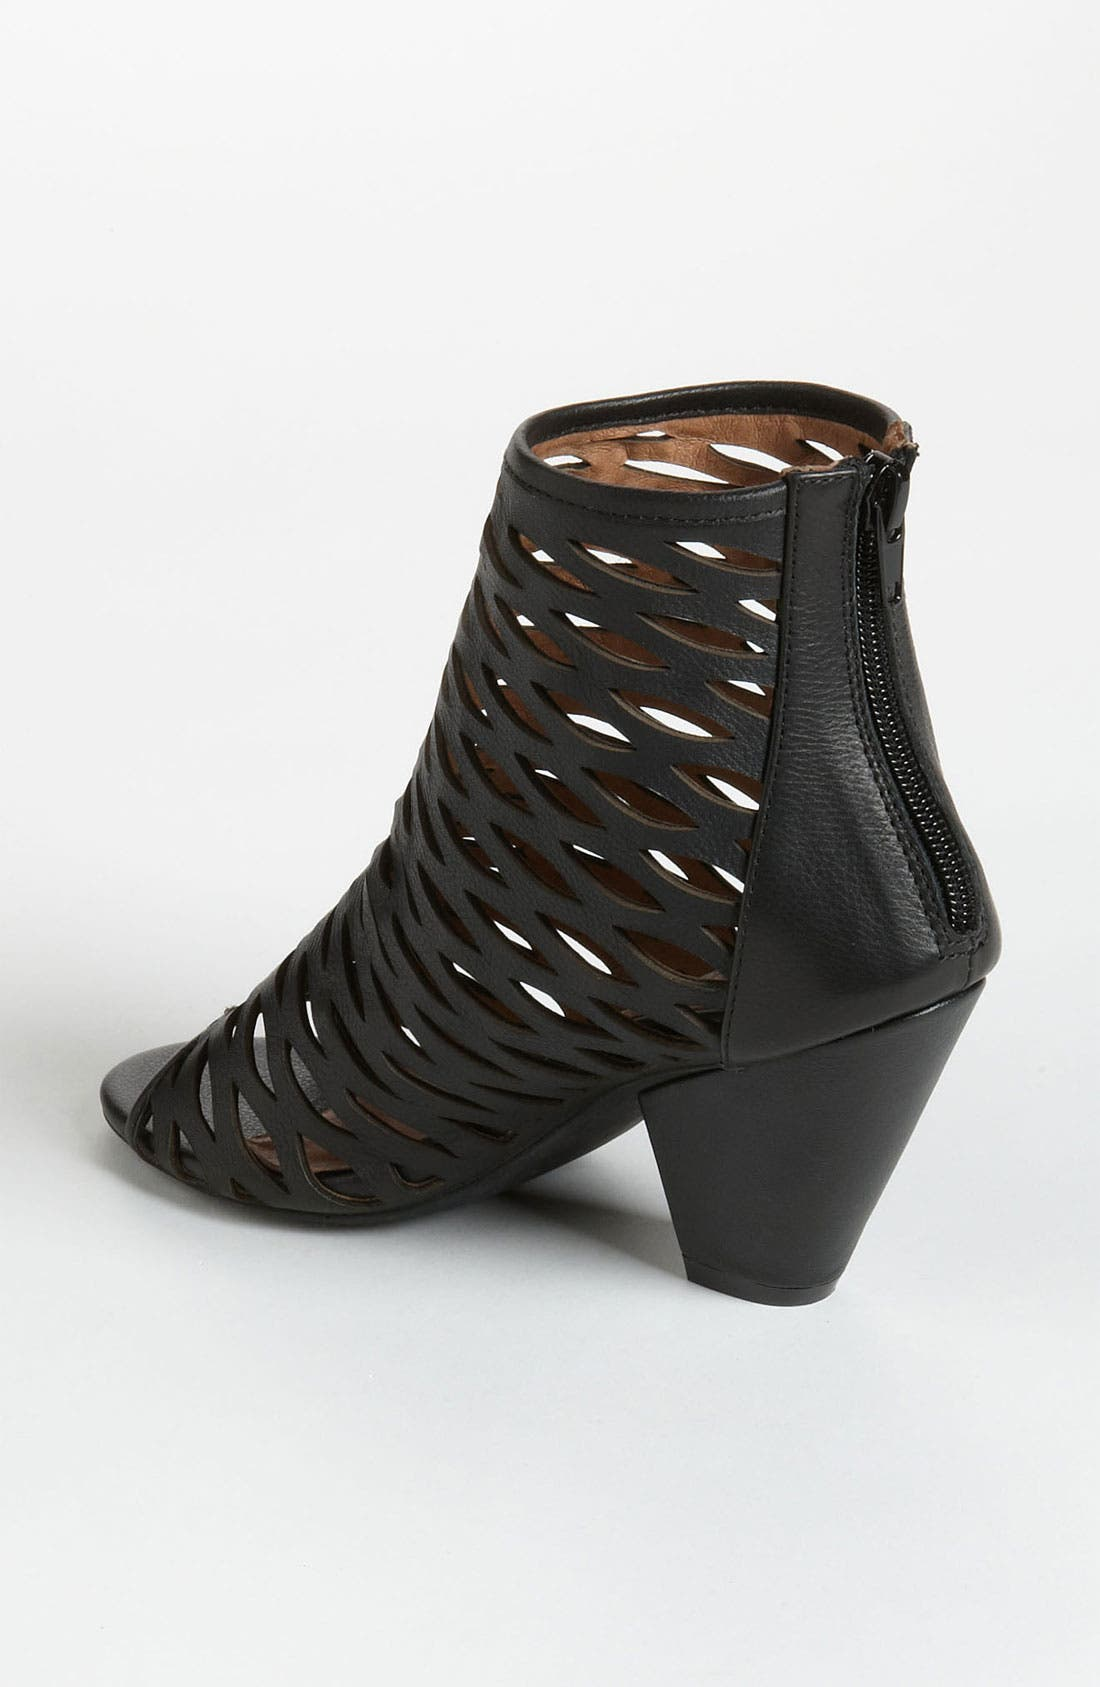 'Produce' Open Toe Bootie,                             Alternate thumbnail 4, color,                             001